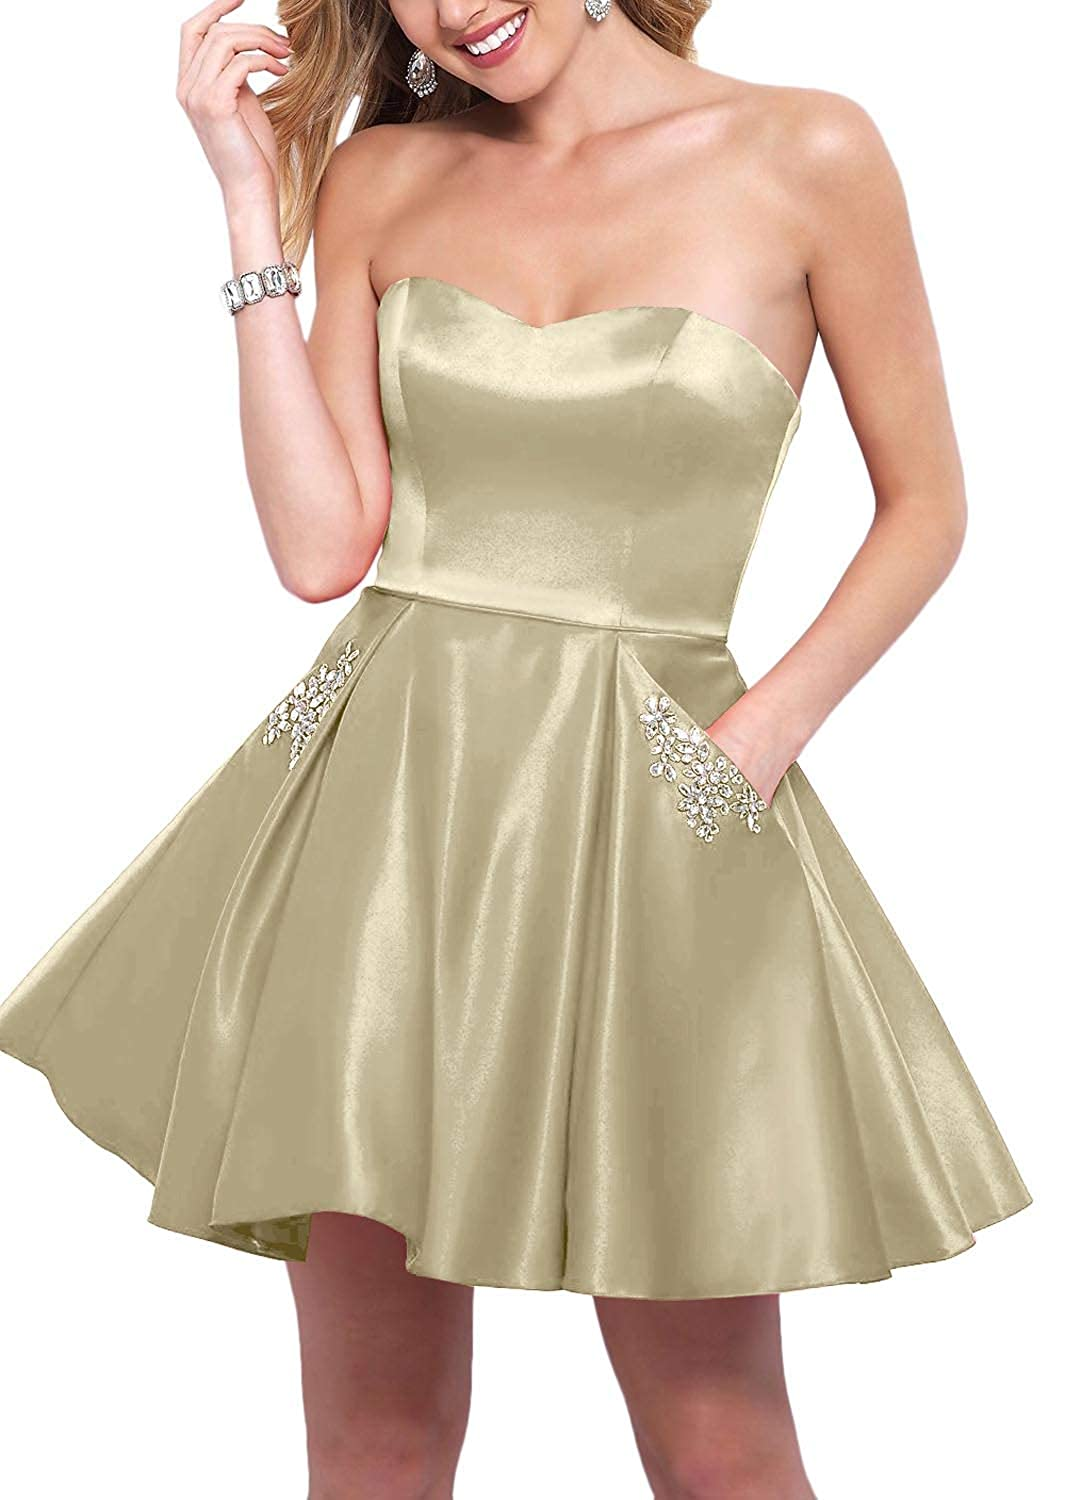 Champagne YnanLi Dress Short Ball Gown Homecoming Dresses 2019 Strapless Sweetheart with Beaded Pockets